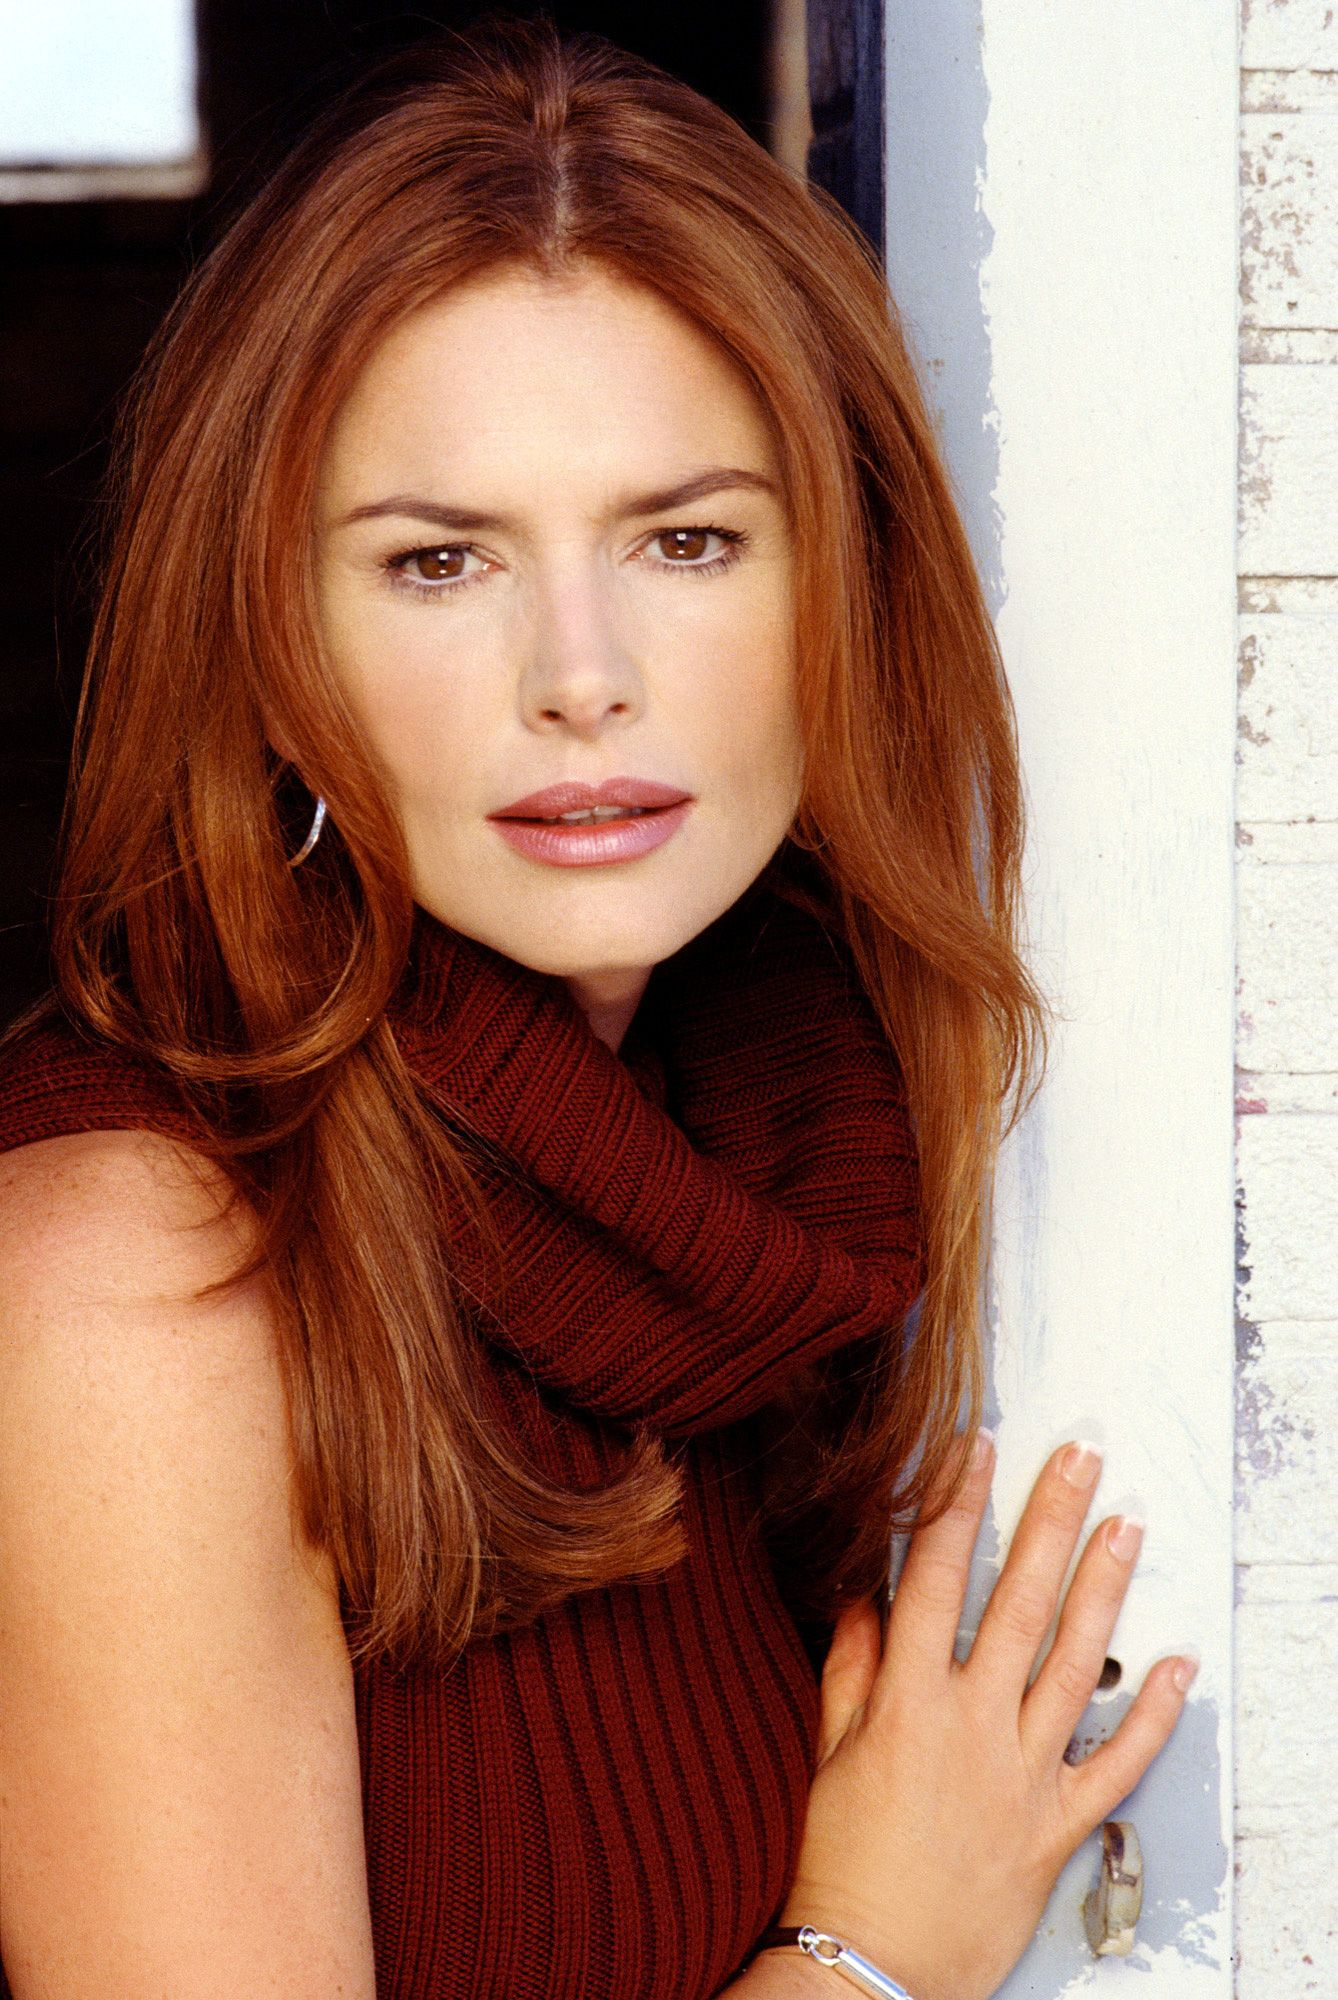 roma downey twitter